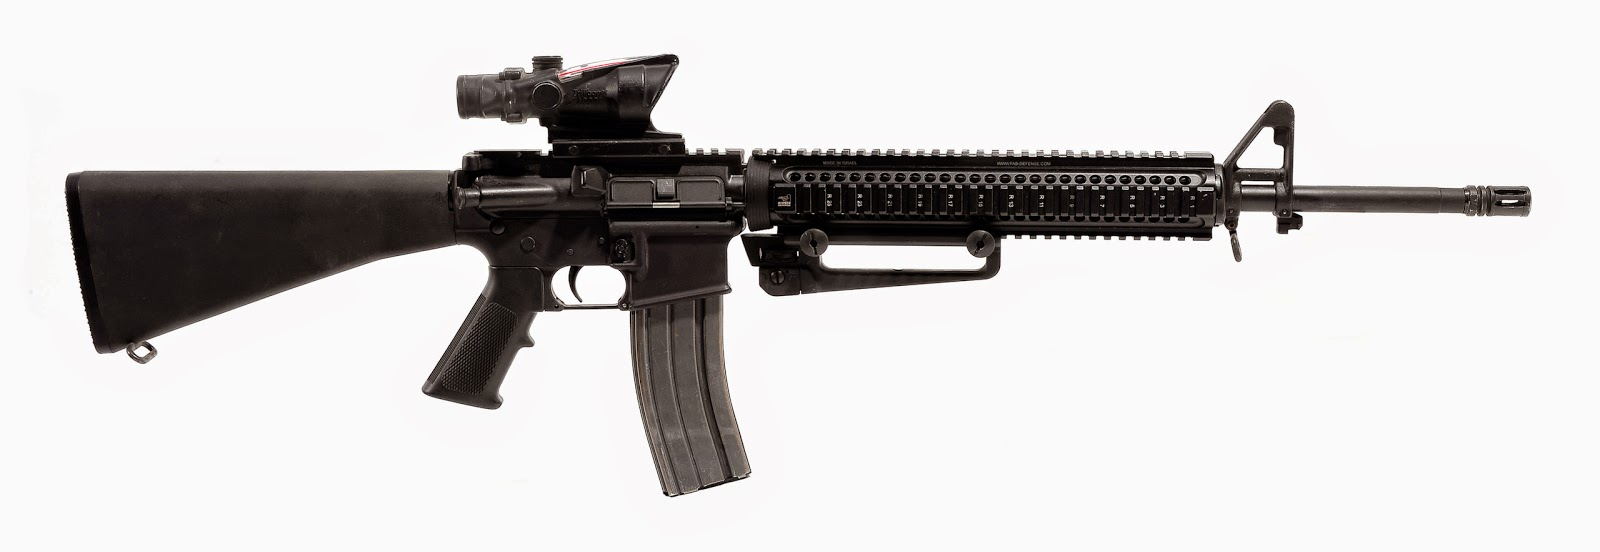 United States Ground Forces: M16 M16a4 Assault Rifle